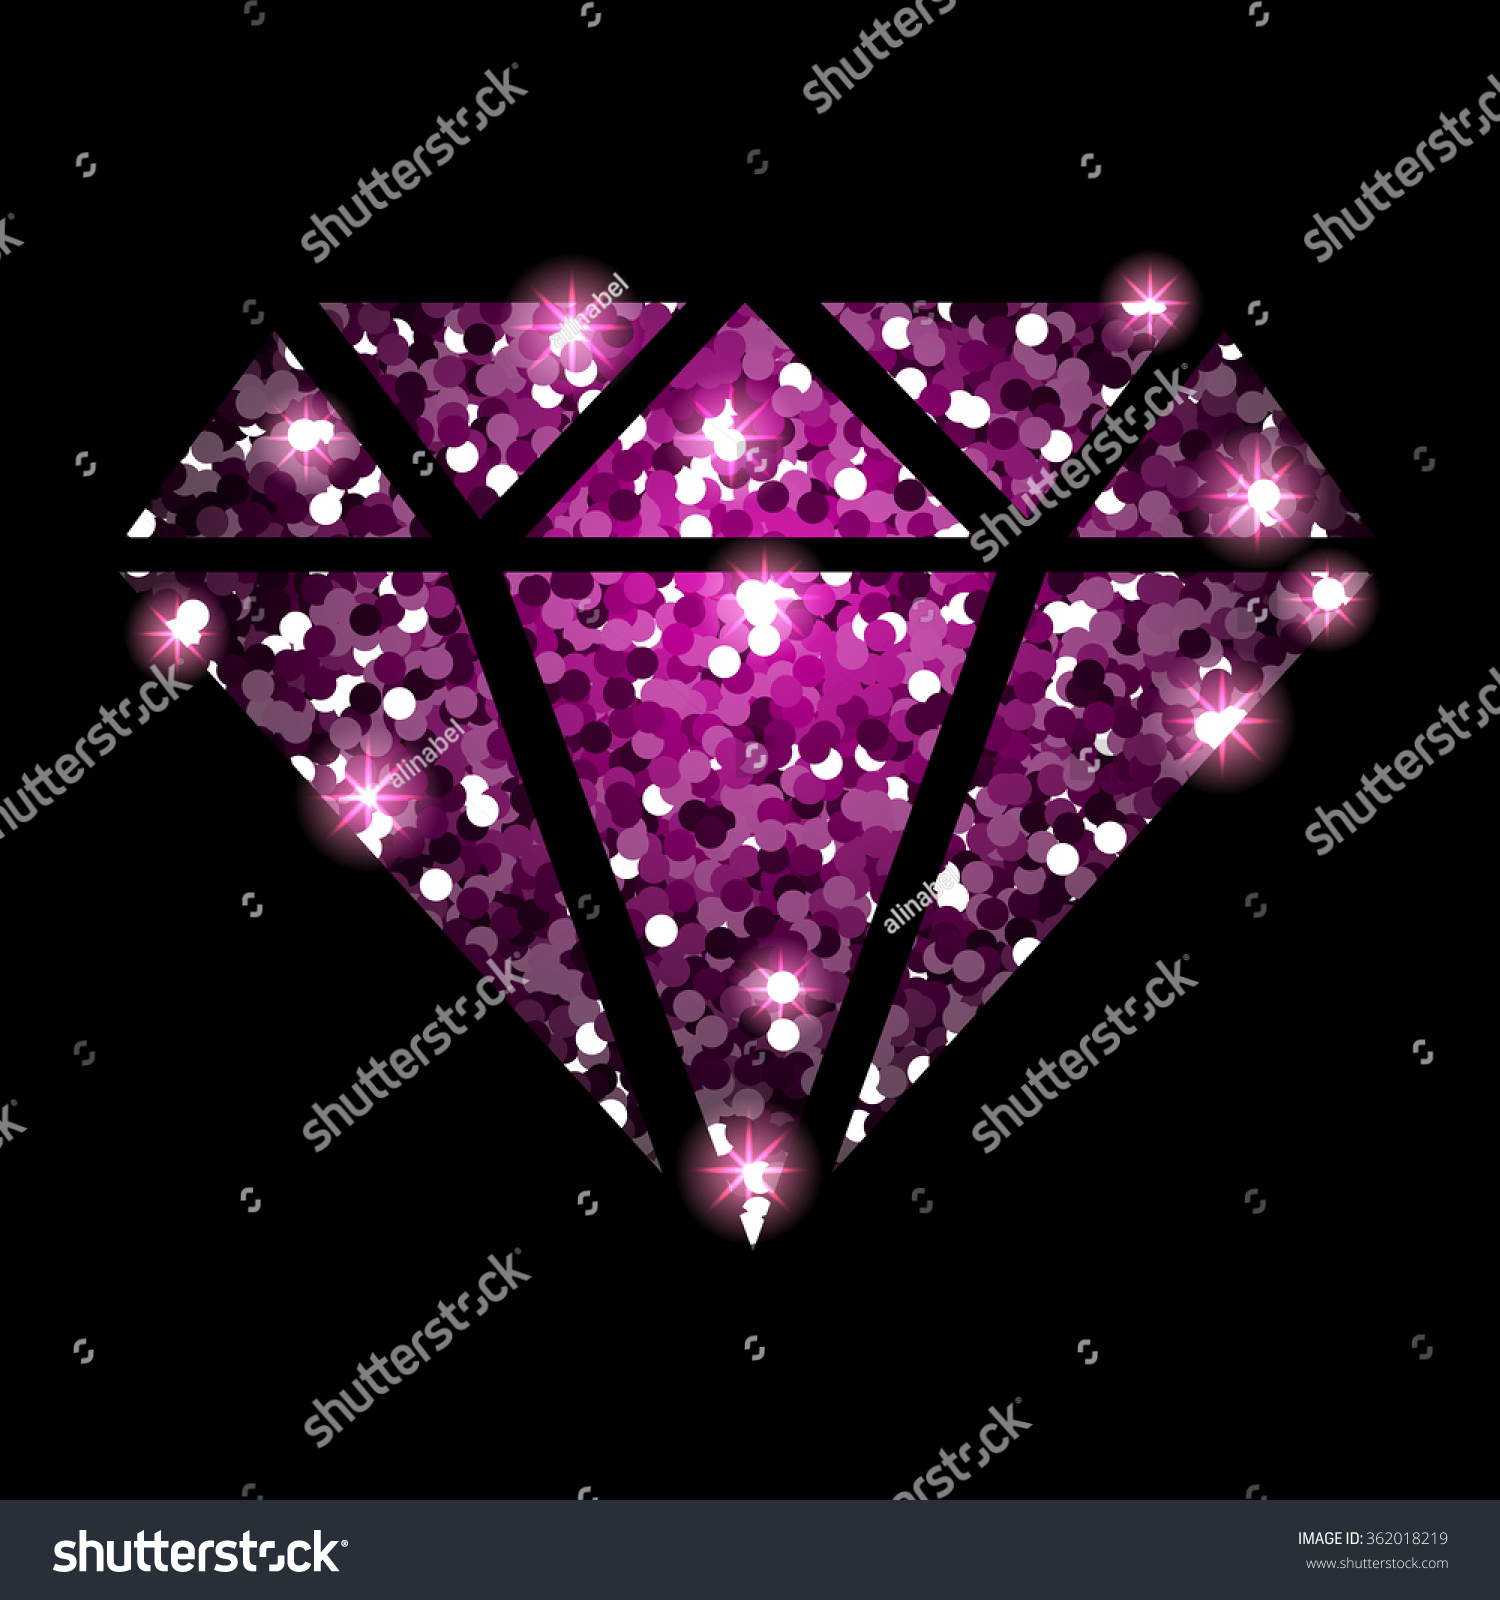 diamond design download wallpaper background butterflies glow images purple diamonds sparkle exotic butterfly